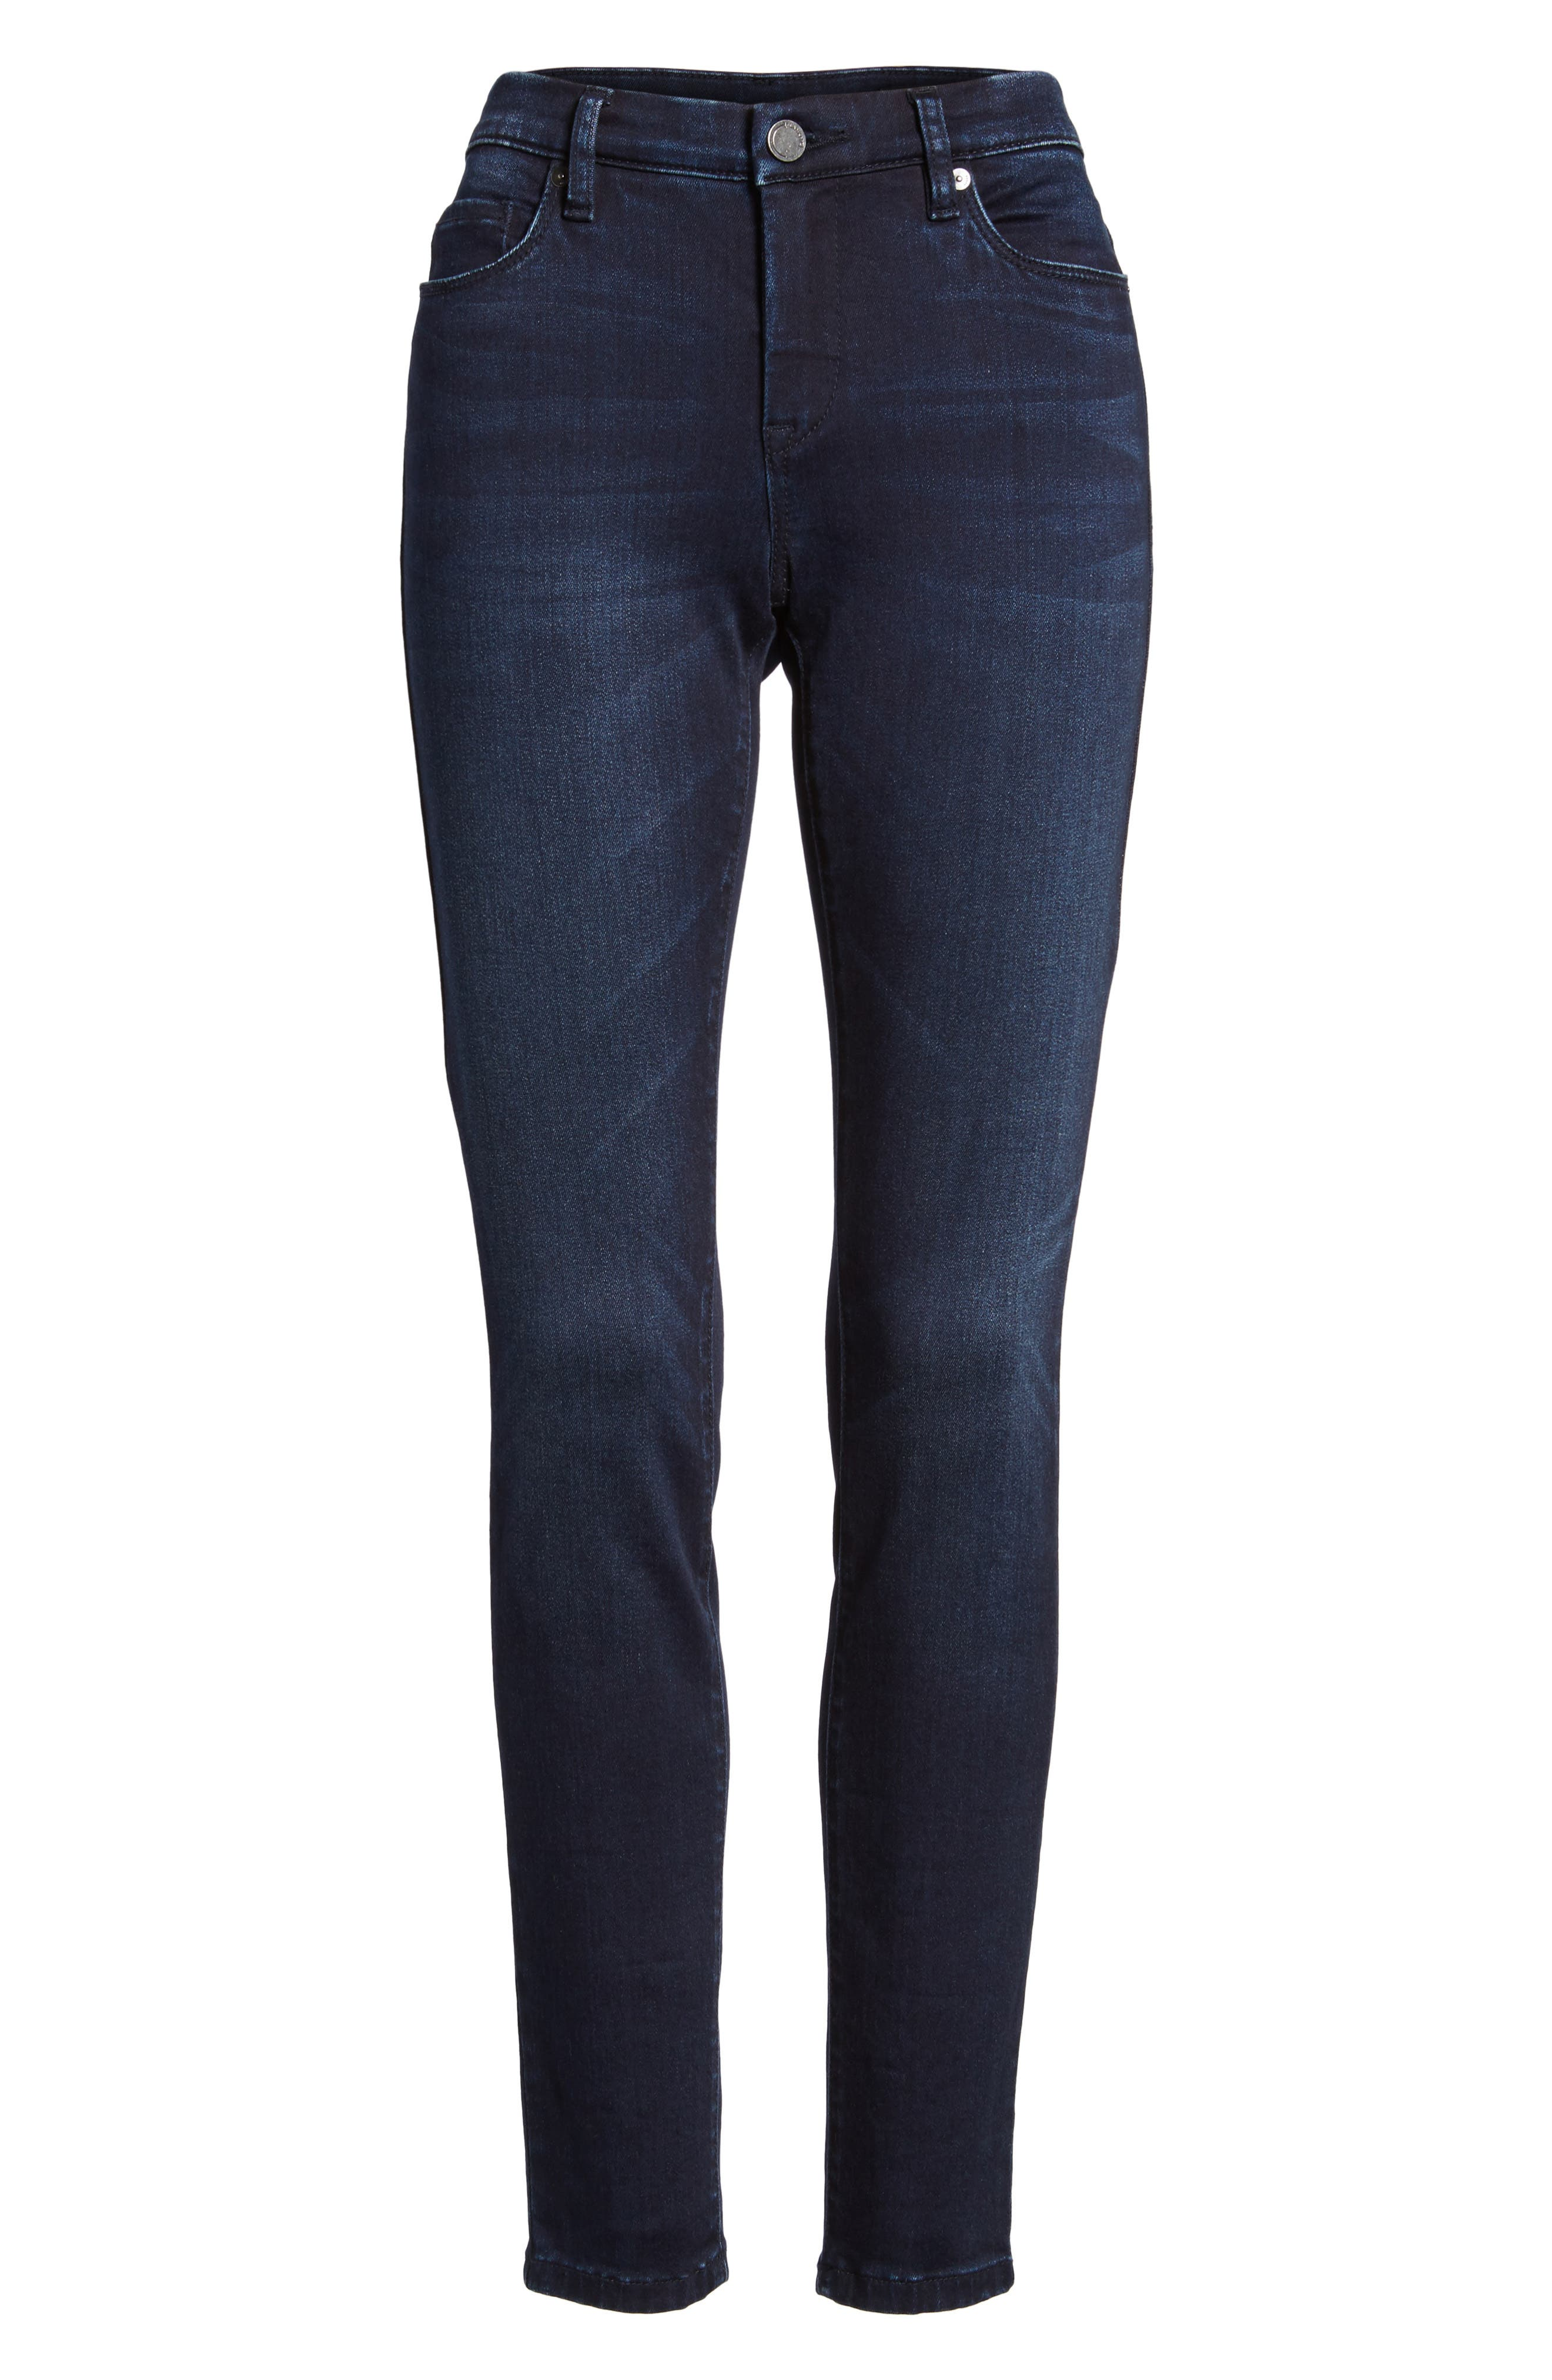 Stretch Skinny Jeans,                             Alternate thumbnail 6, color,                             401